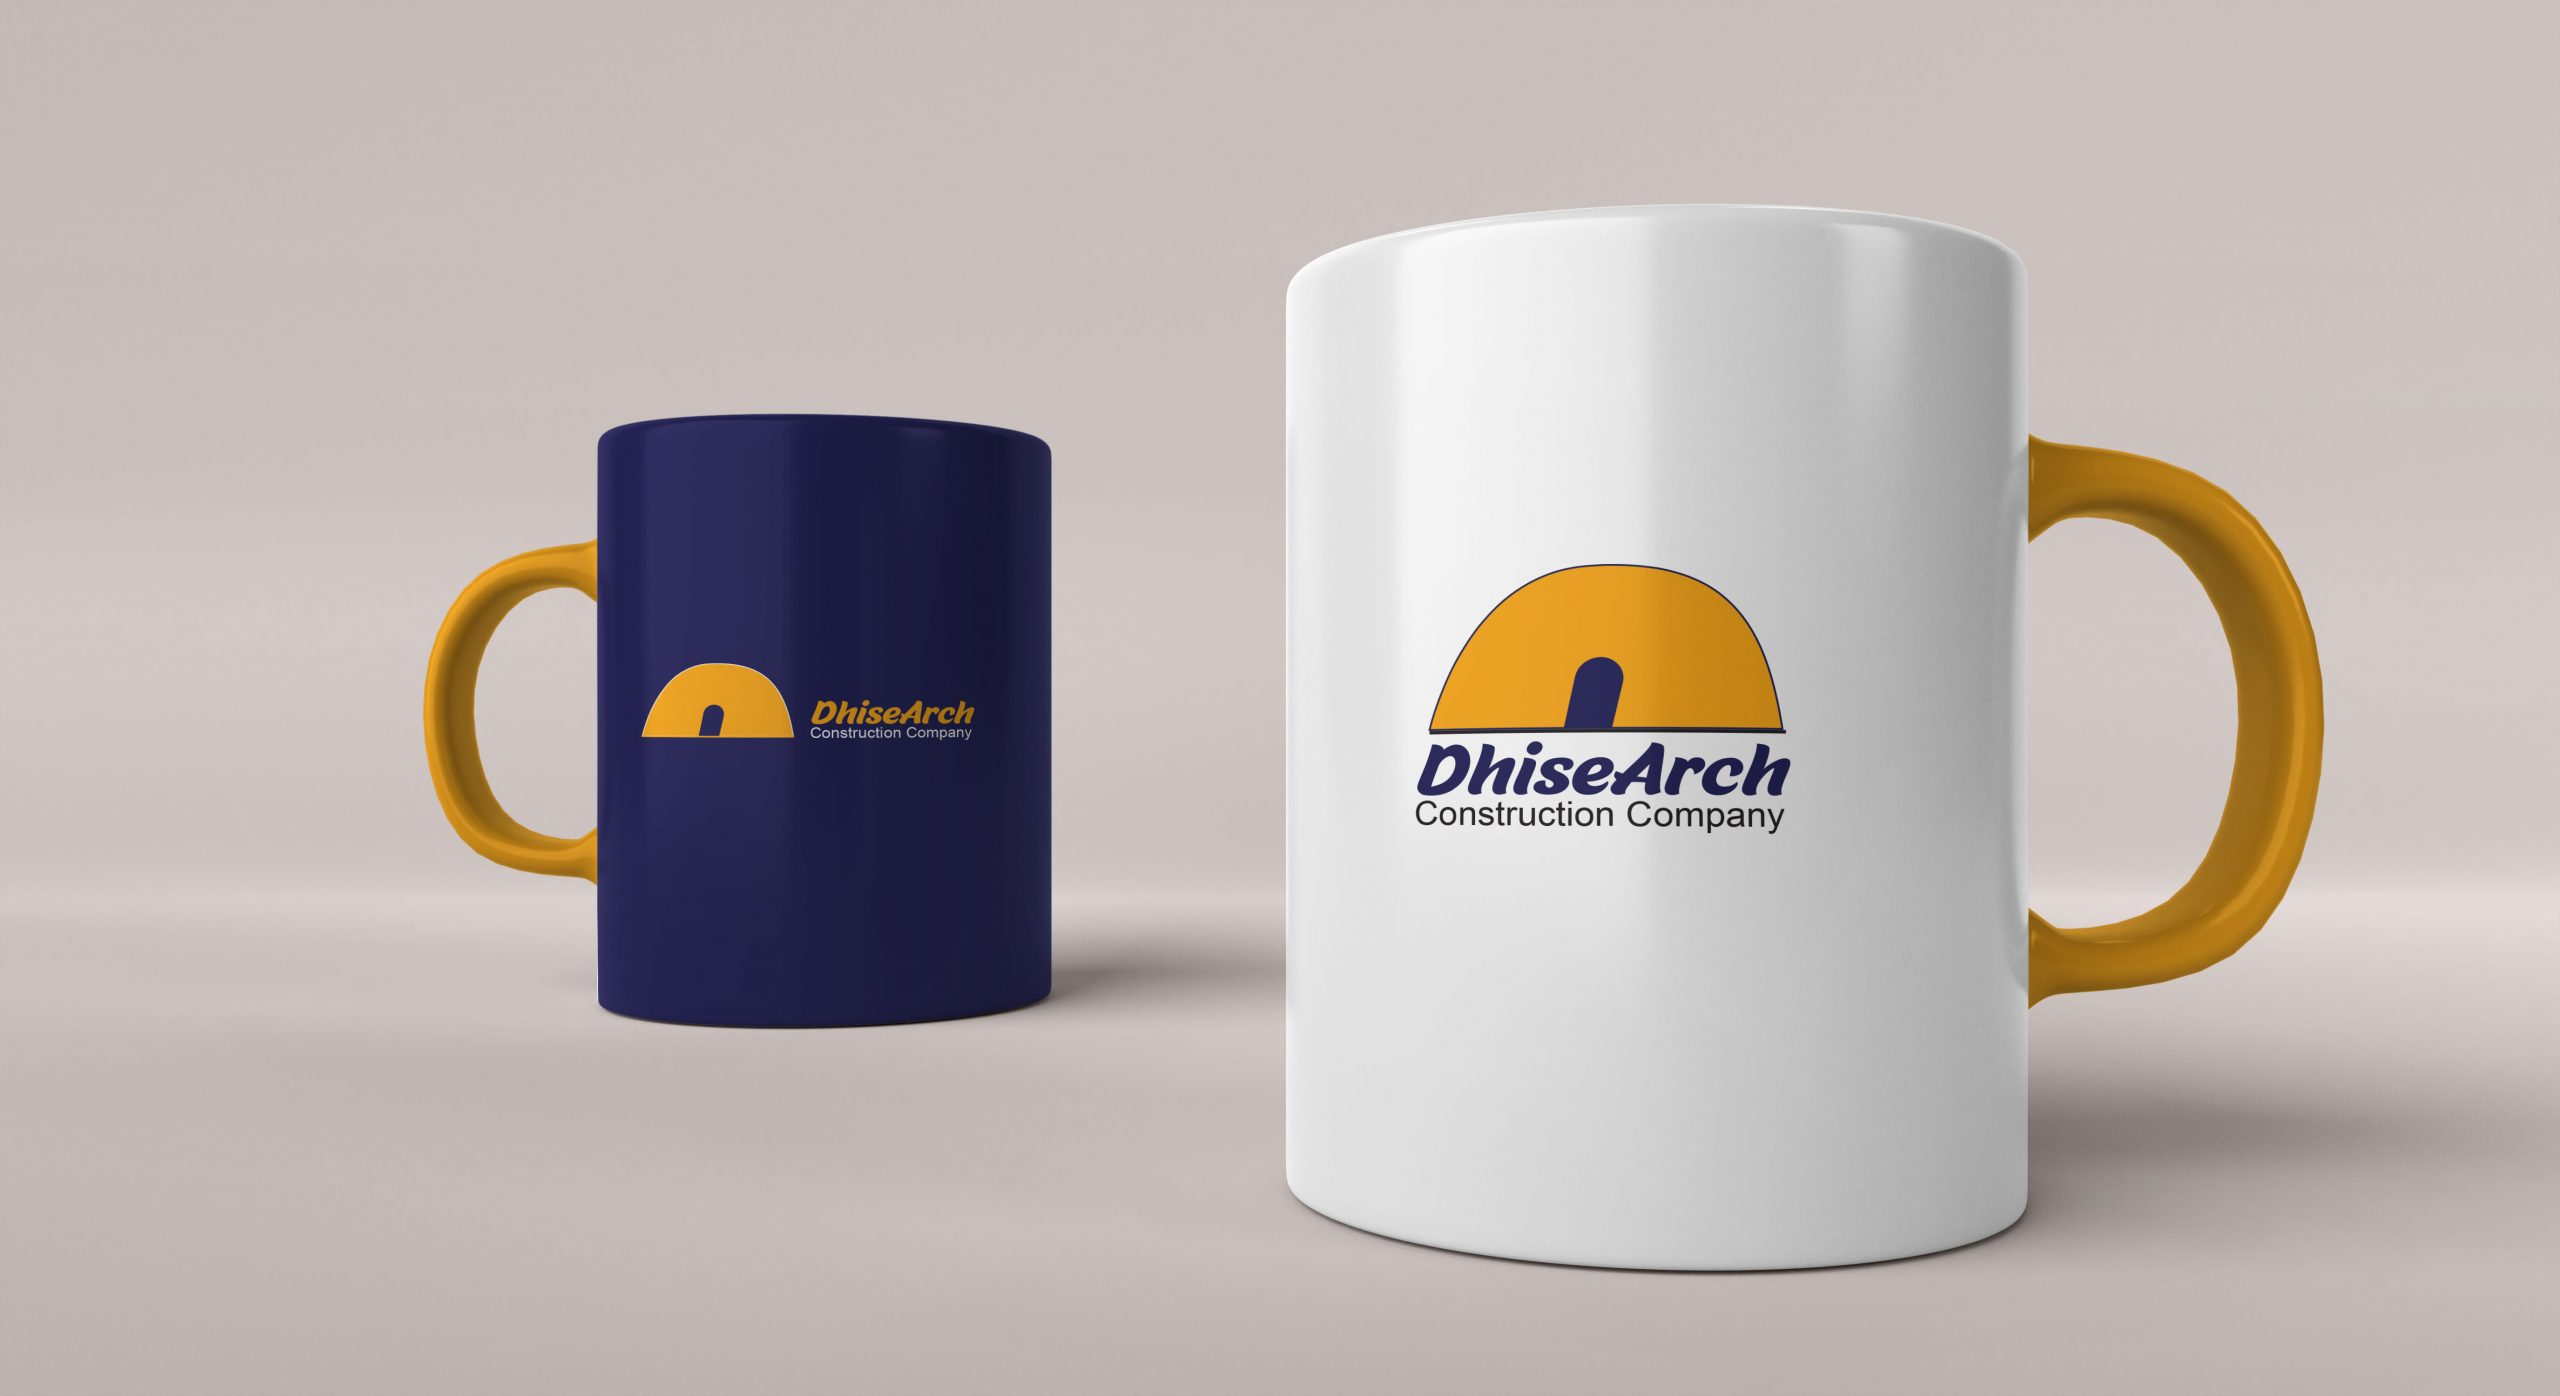 Dhsiearch construction company